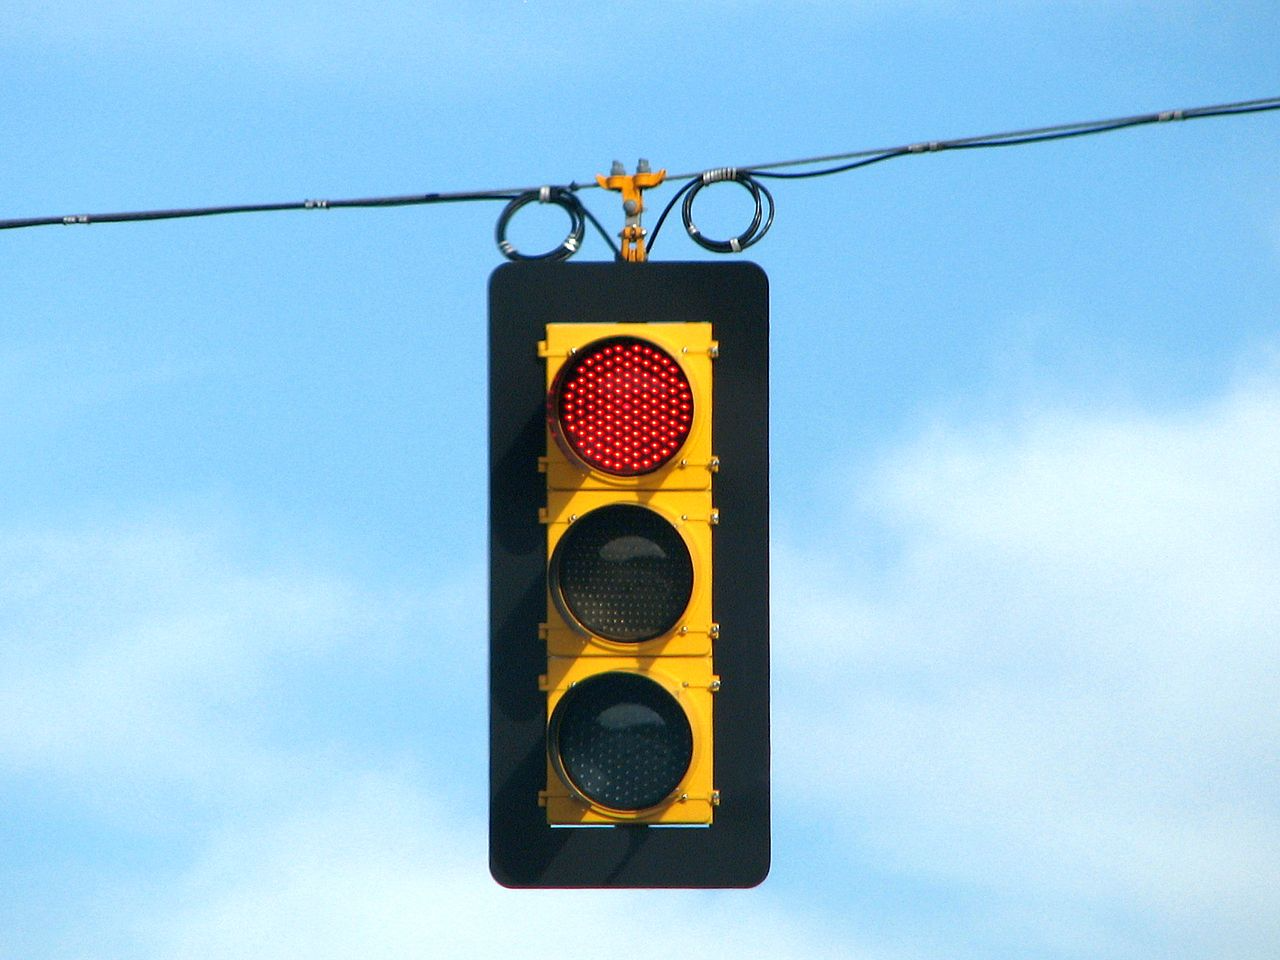 1280px-LED_traffic_light_on_red.png